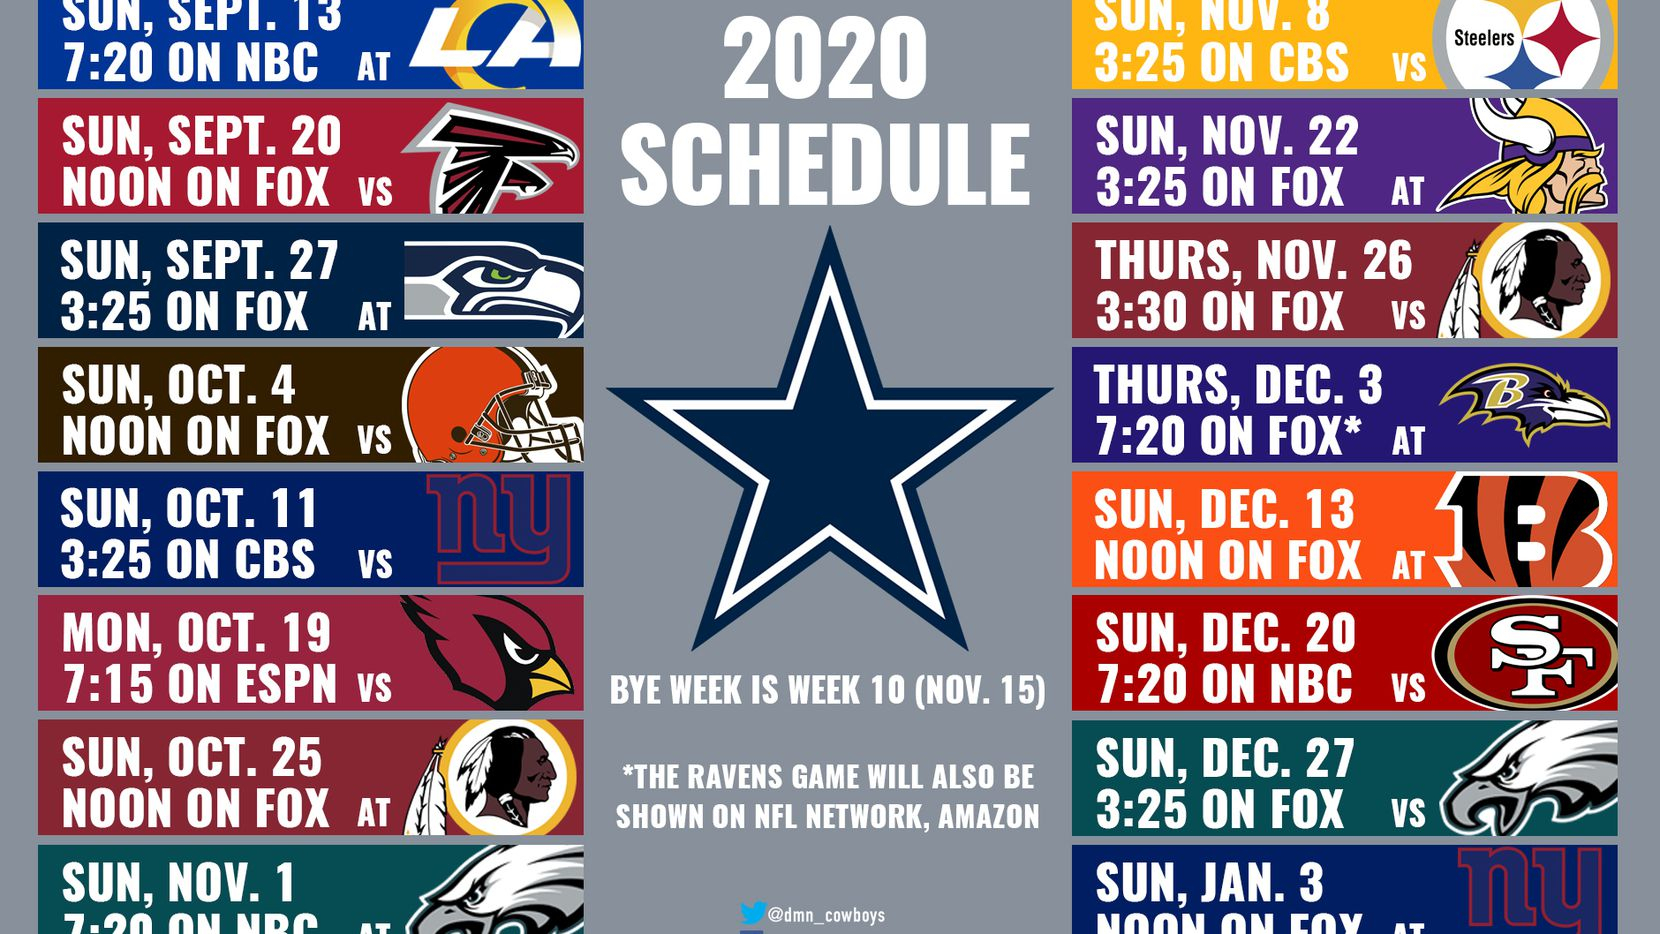 2020 Cowboys Schedule: Dates And Times Announced For Dallas for Printable Nfl Schedule For 2020 2021